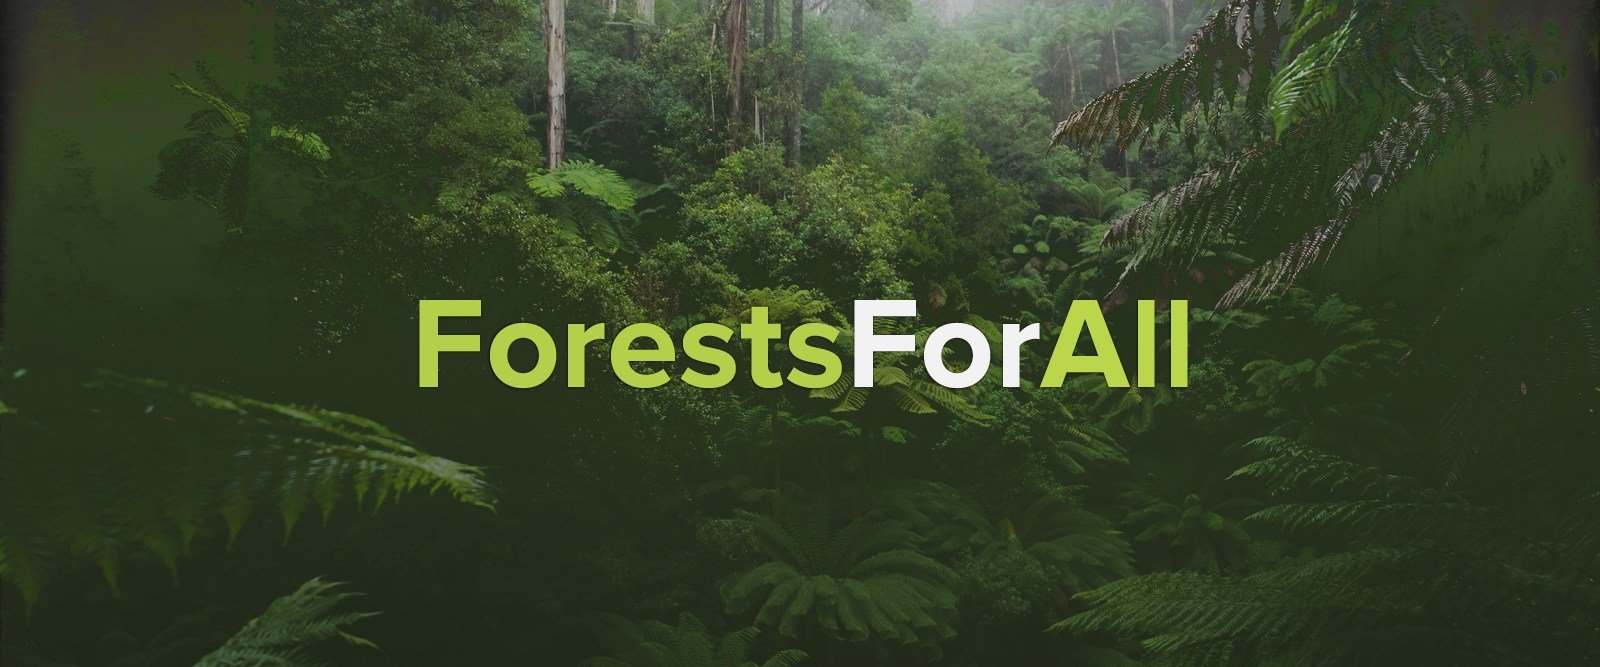 Forests for all (NSW NPA)